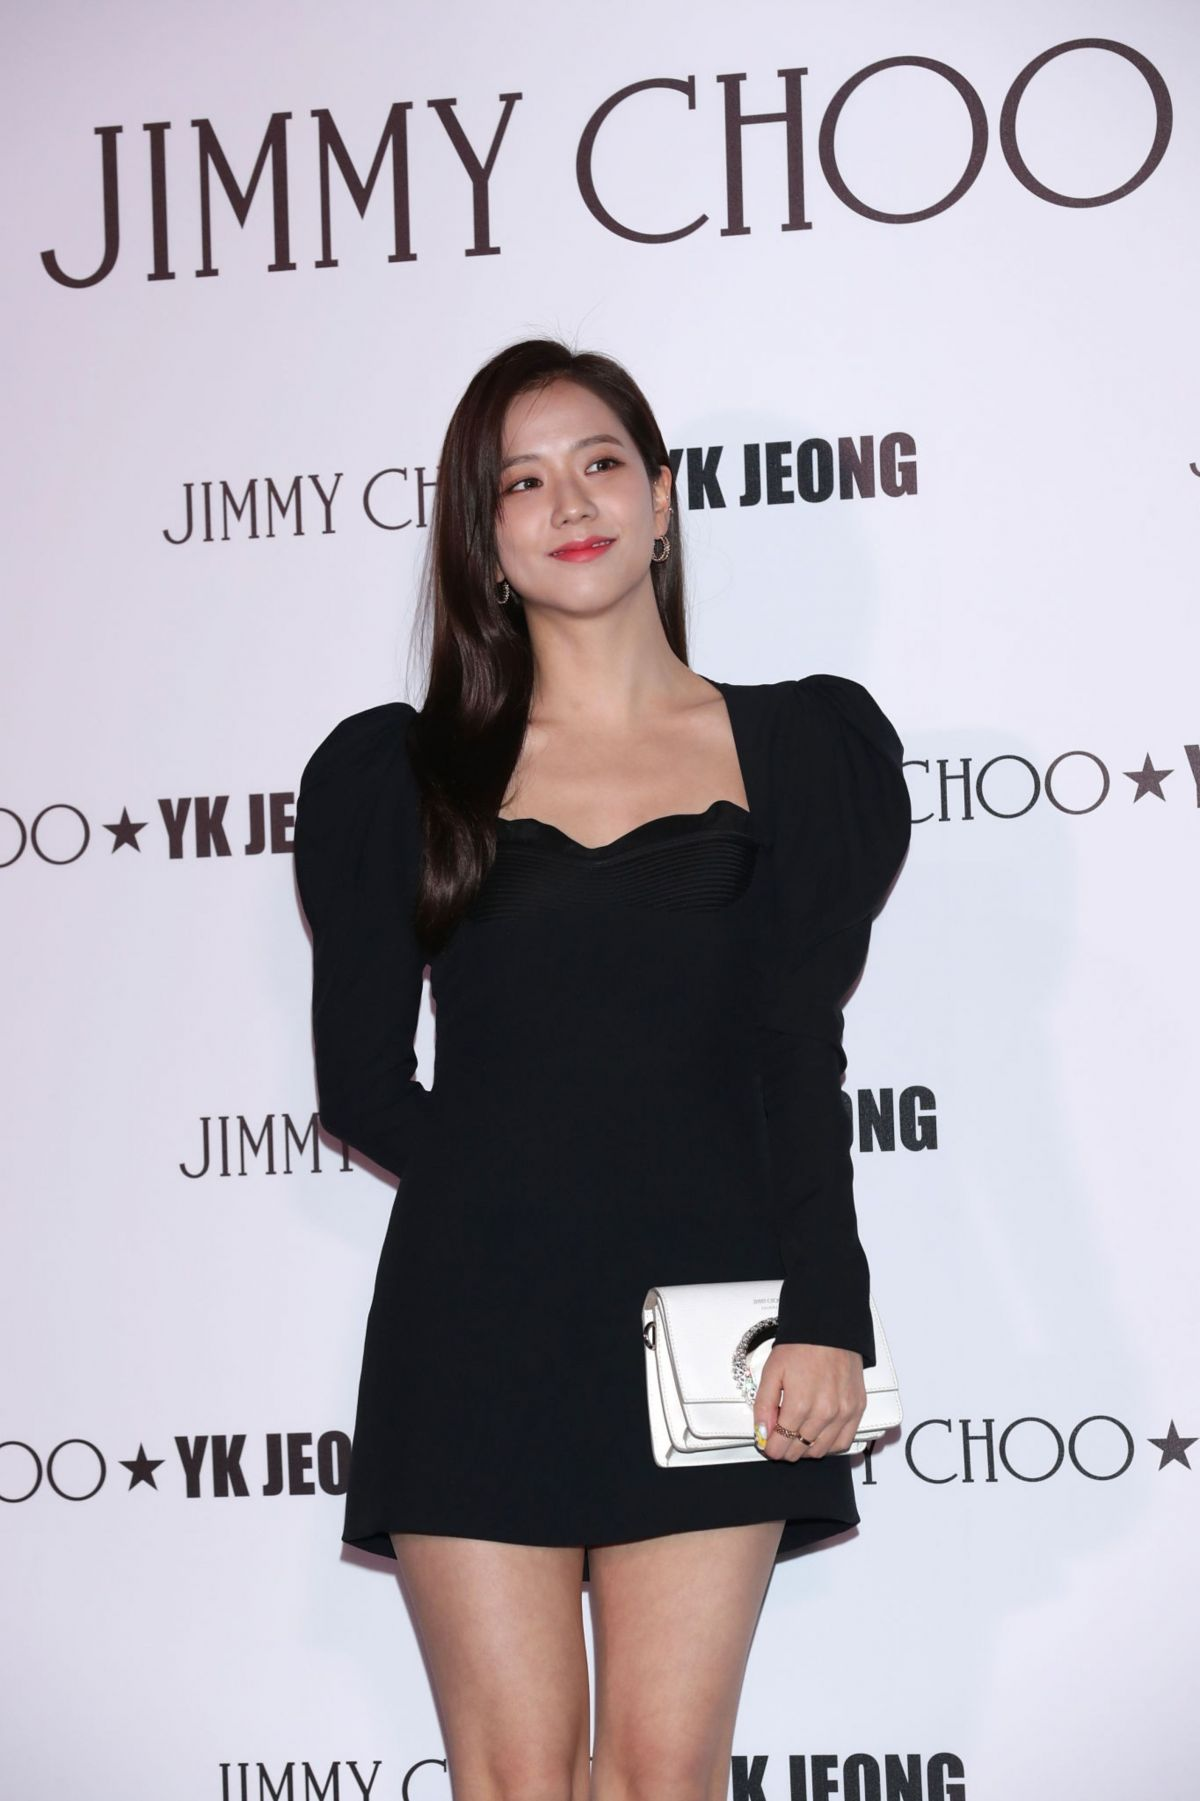 jisoo-from-blackpink-at-jimmy-choo-x-yk-jeong-capsule-collection-launc-in-seoul-01-09-2020-2